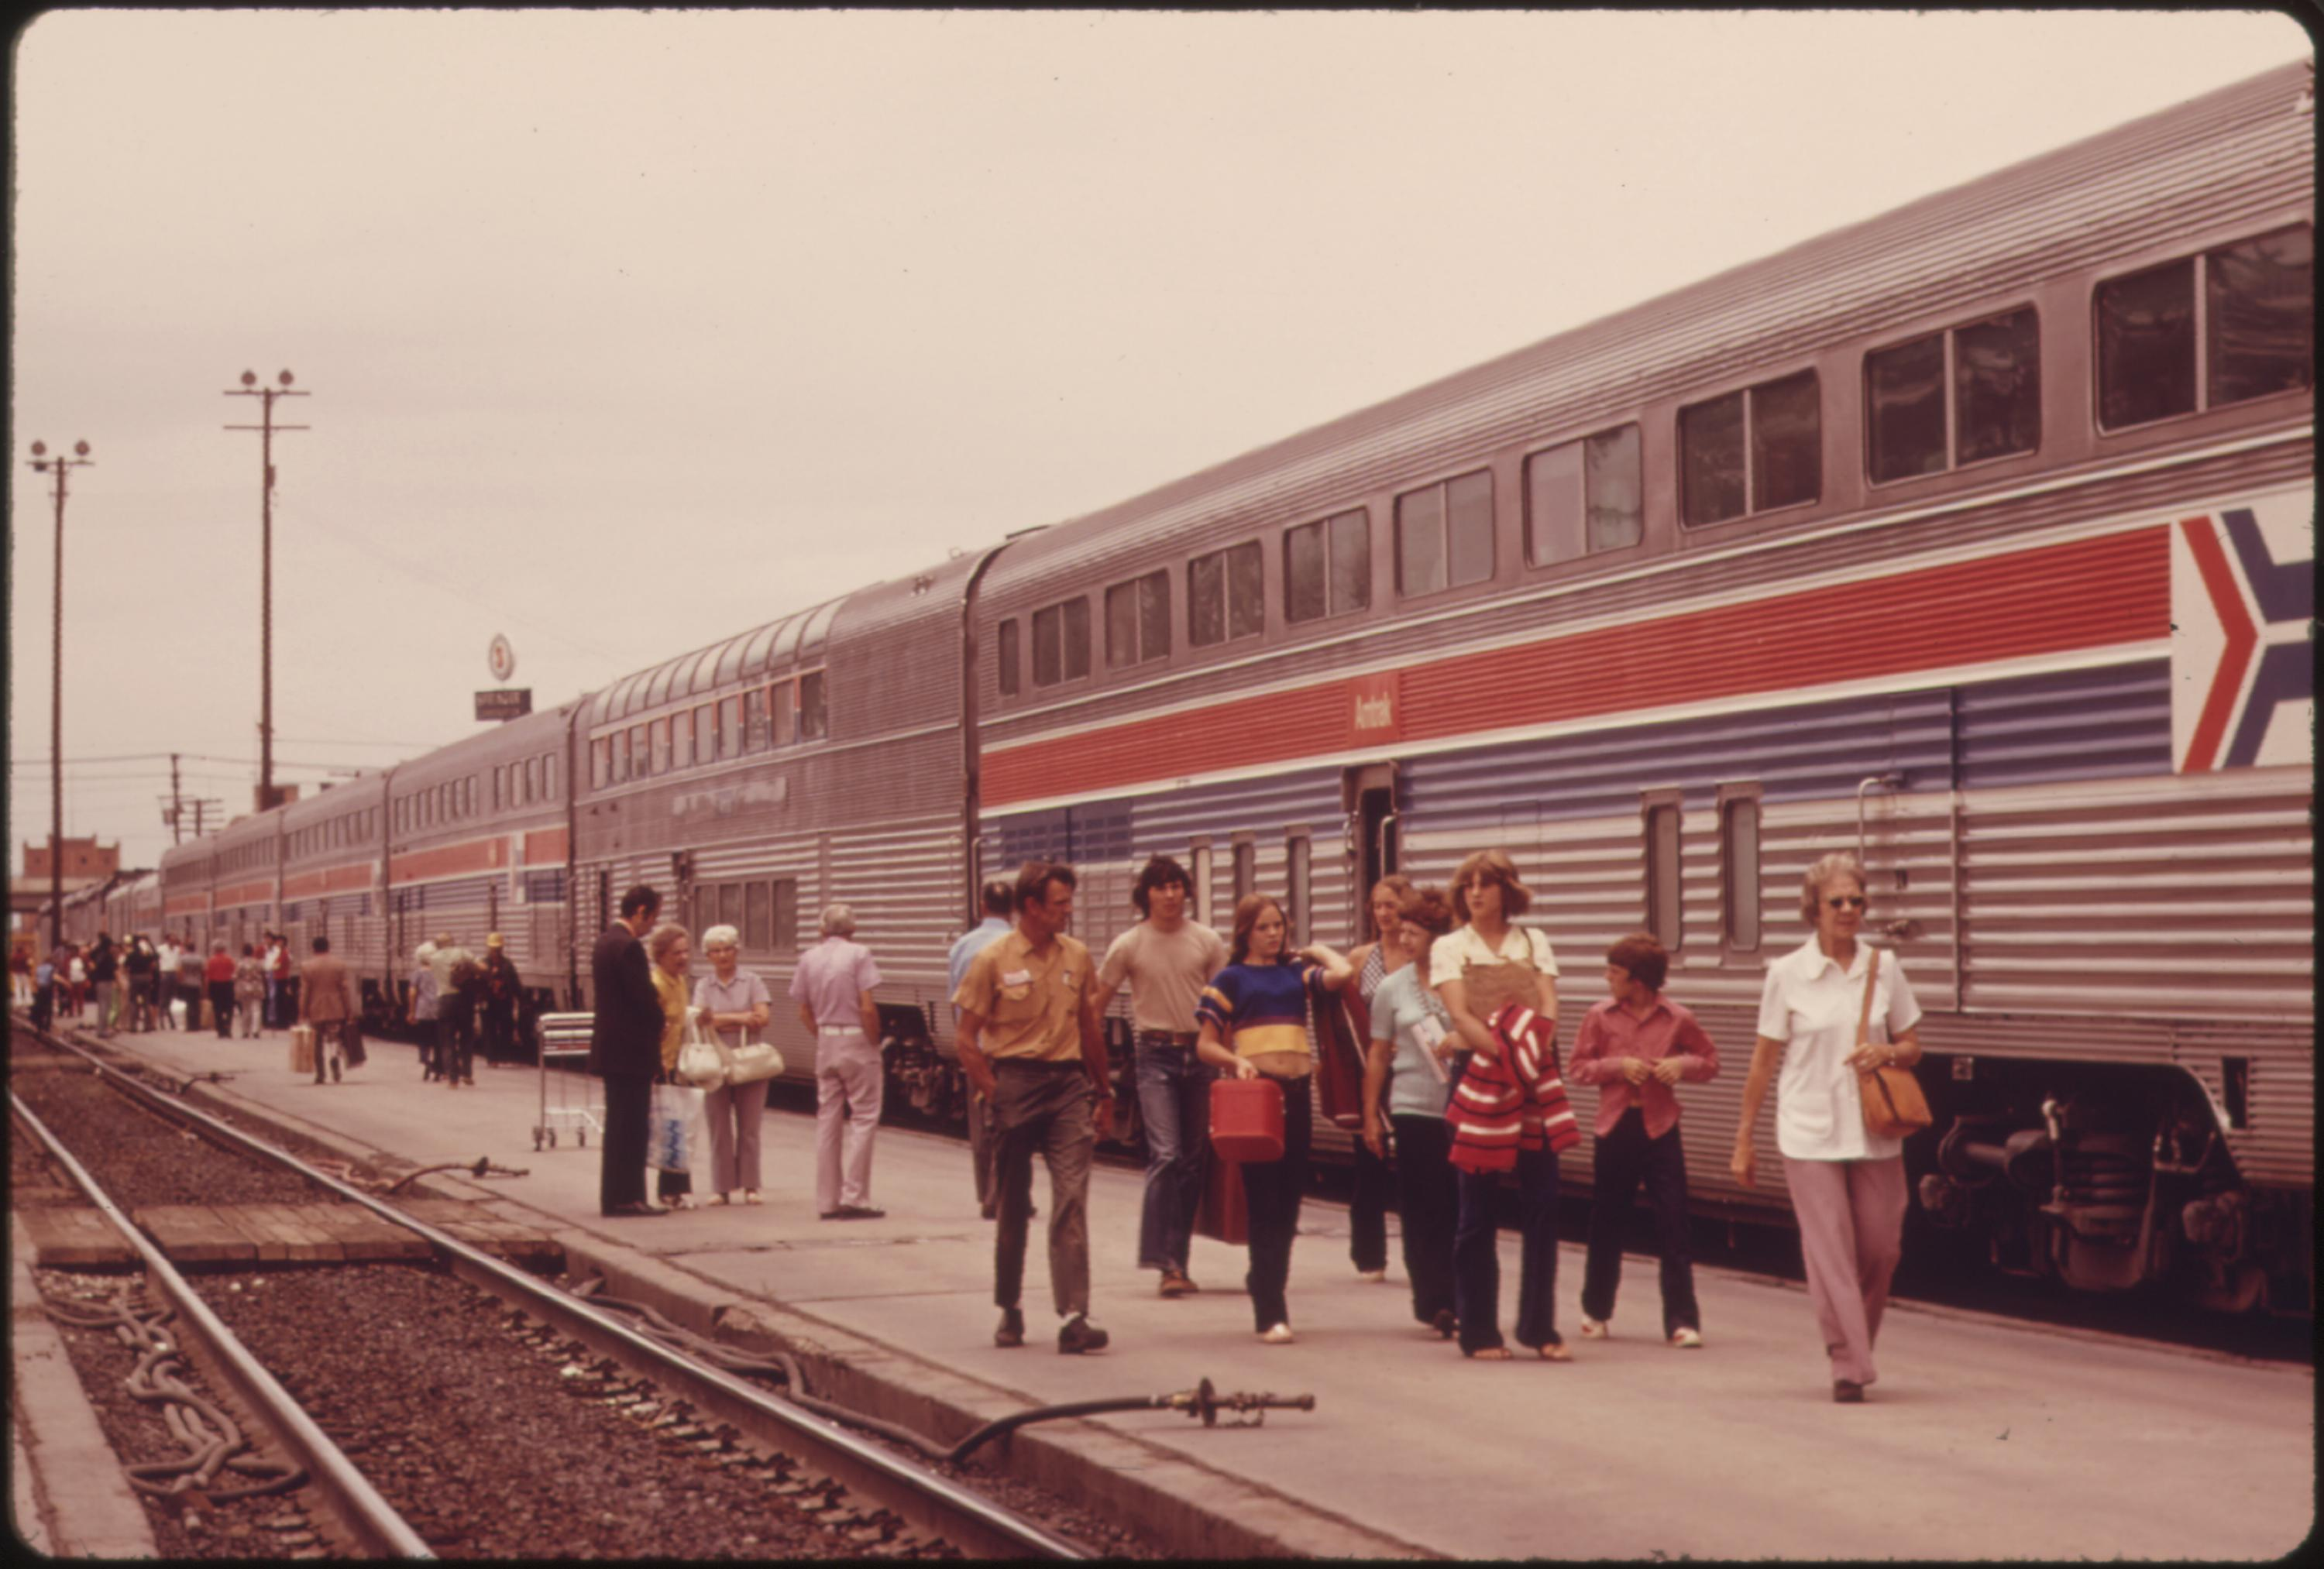 Passengers of the Southwest Limited strolling beside the Amtrak train at Albuquerque, New Mexico, as it halts for refueling enroute to Chicago from Los Angeles, California, June 1974